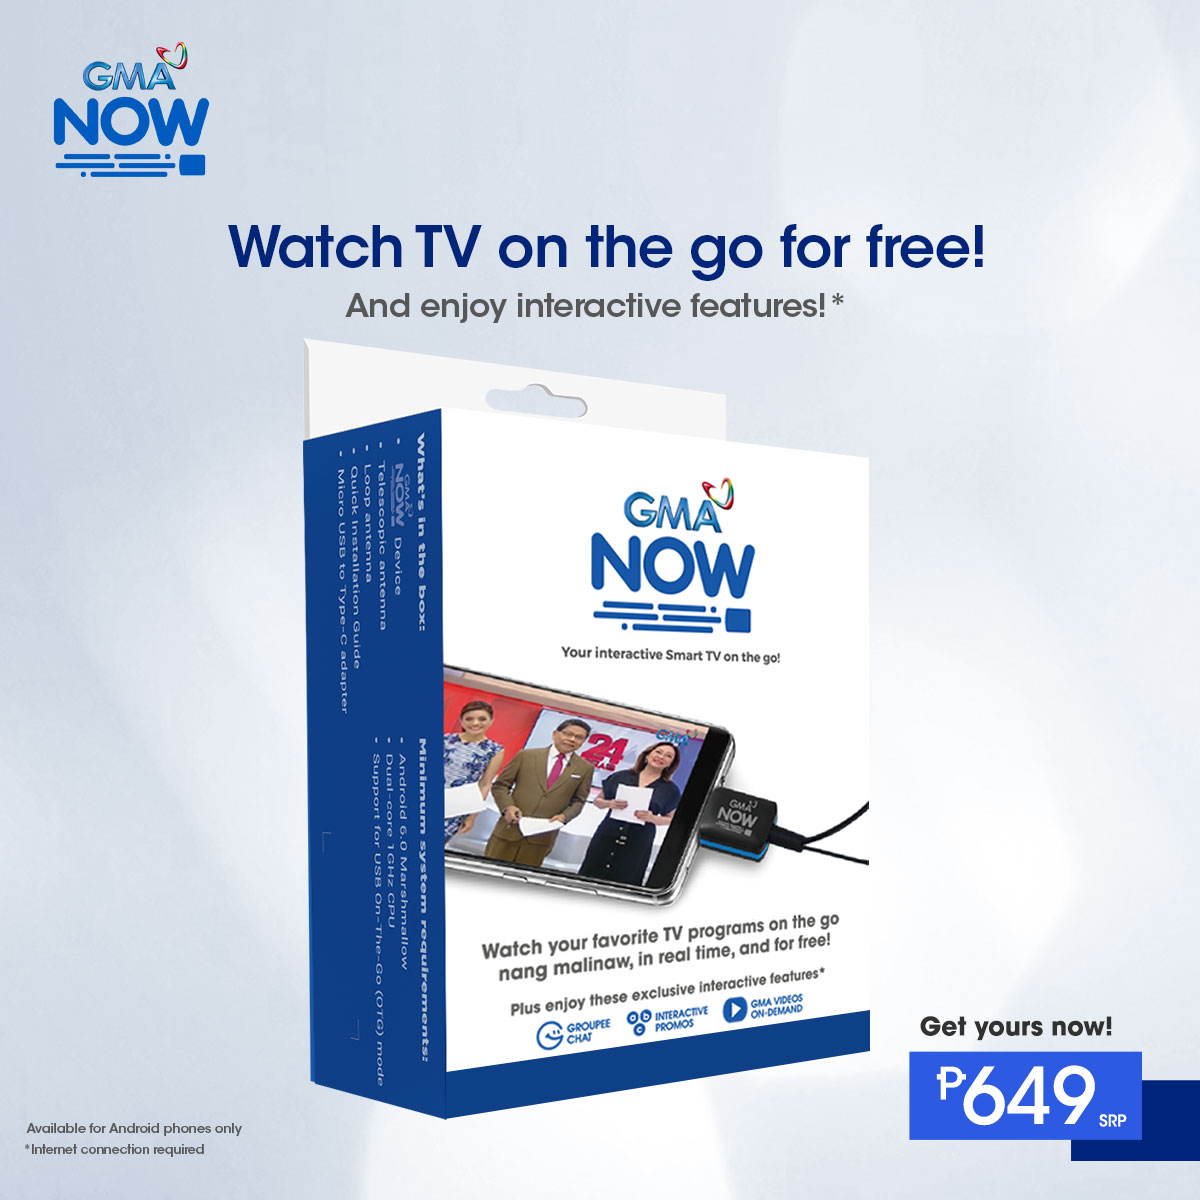 GMA Now -- Watch TV on the go for free